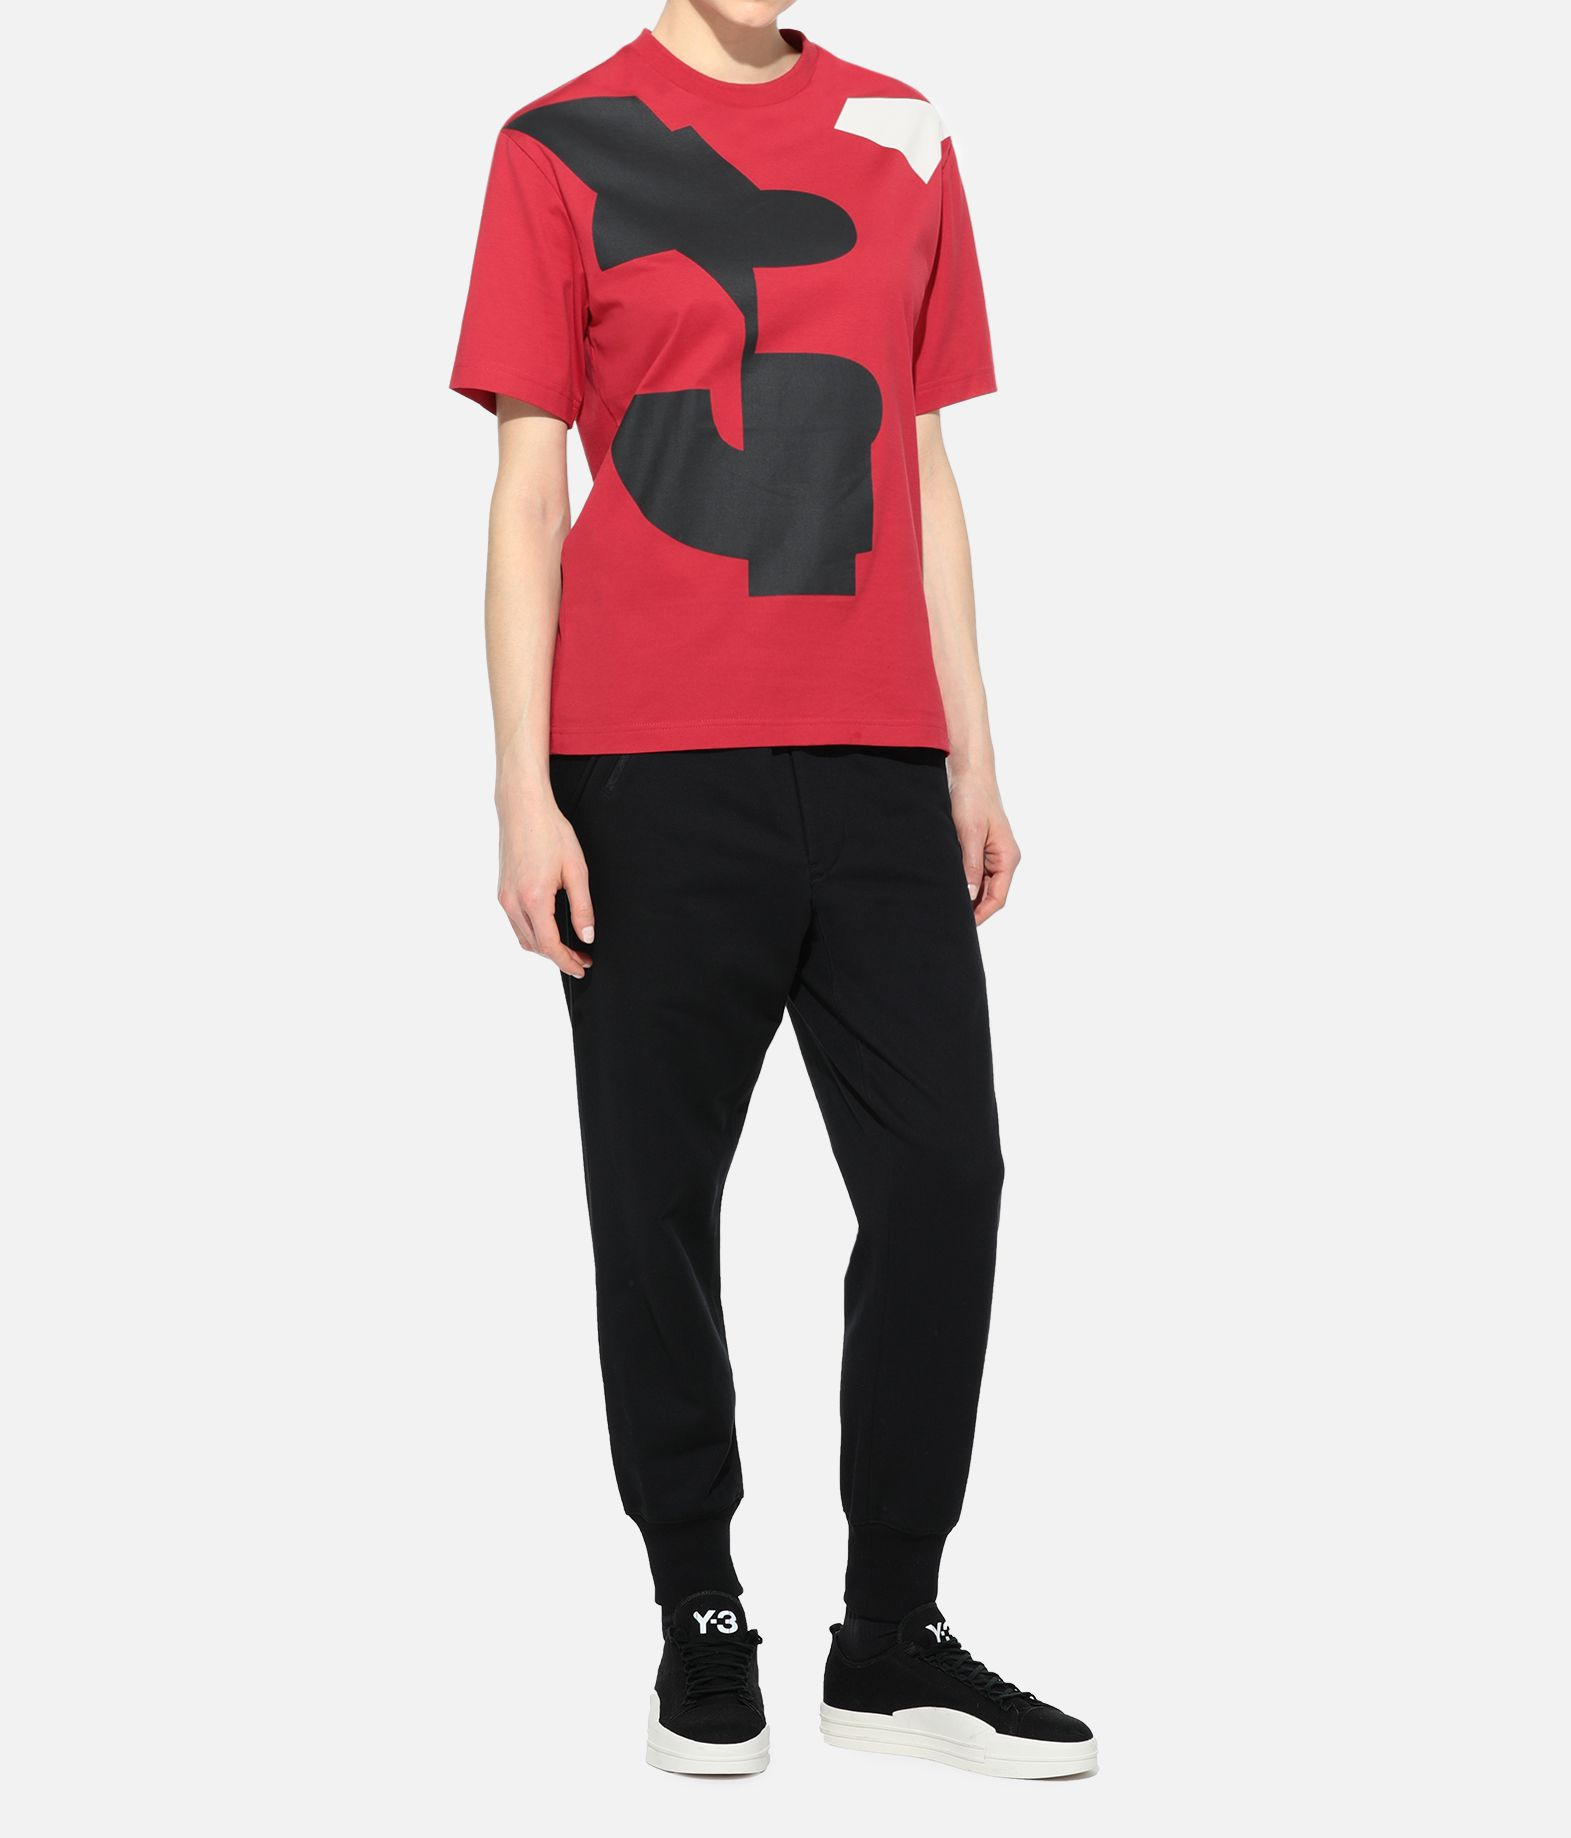 Y-3 Y-3 GRAPHIC TEE Short sleeve t-shirt Woman a